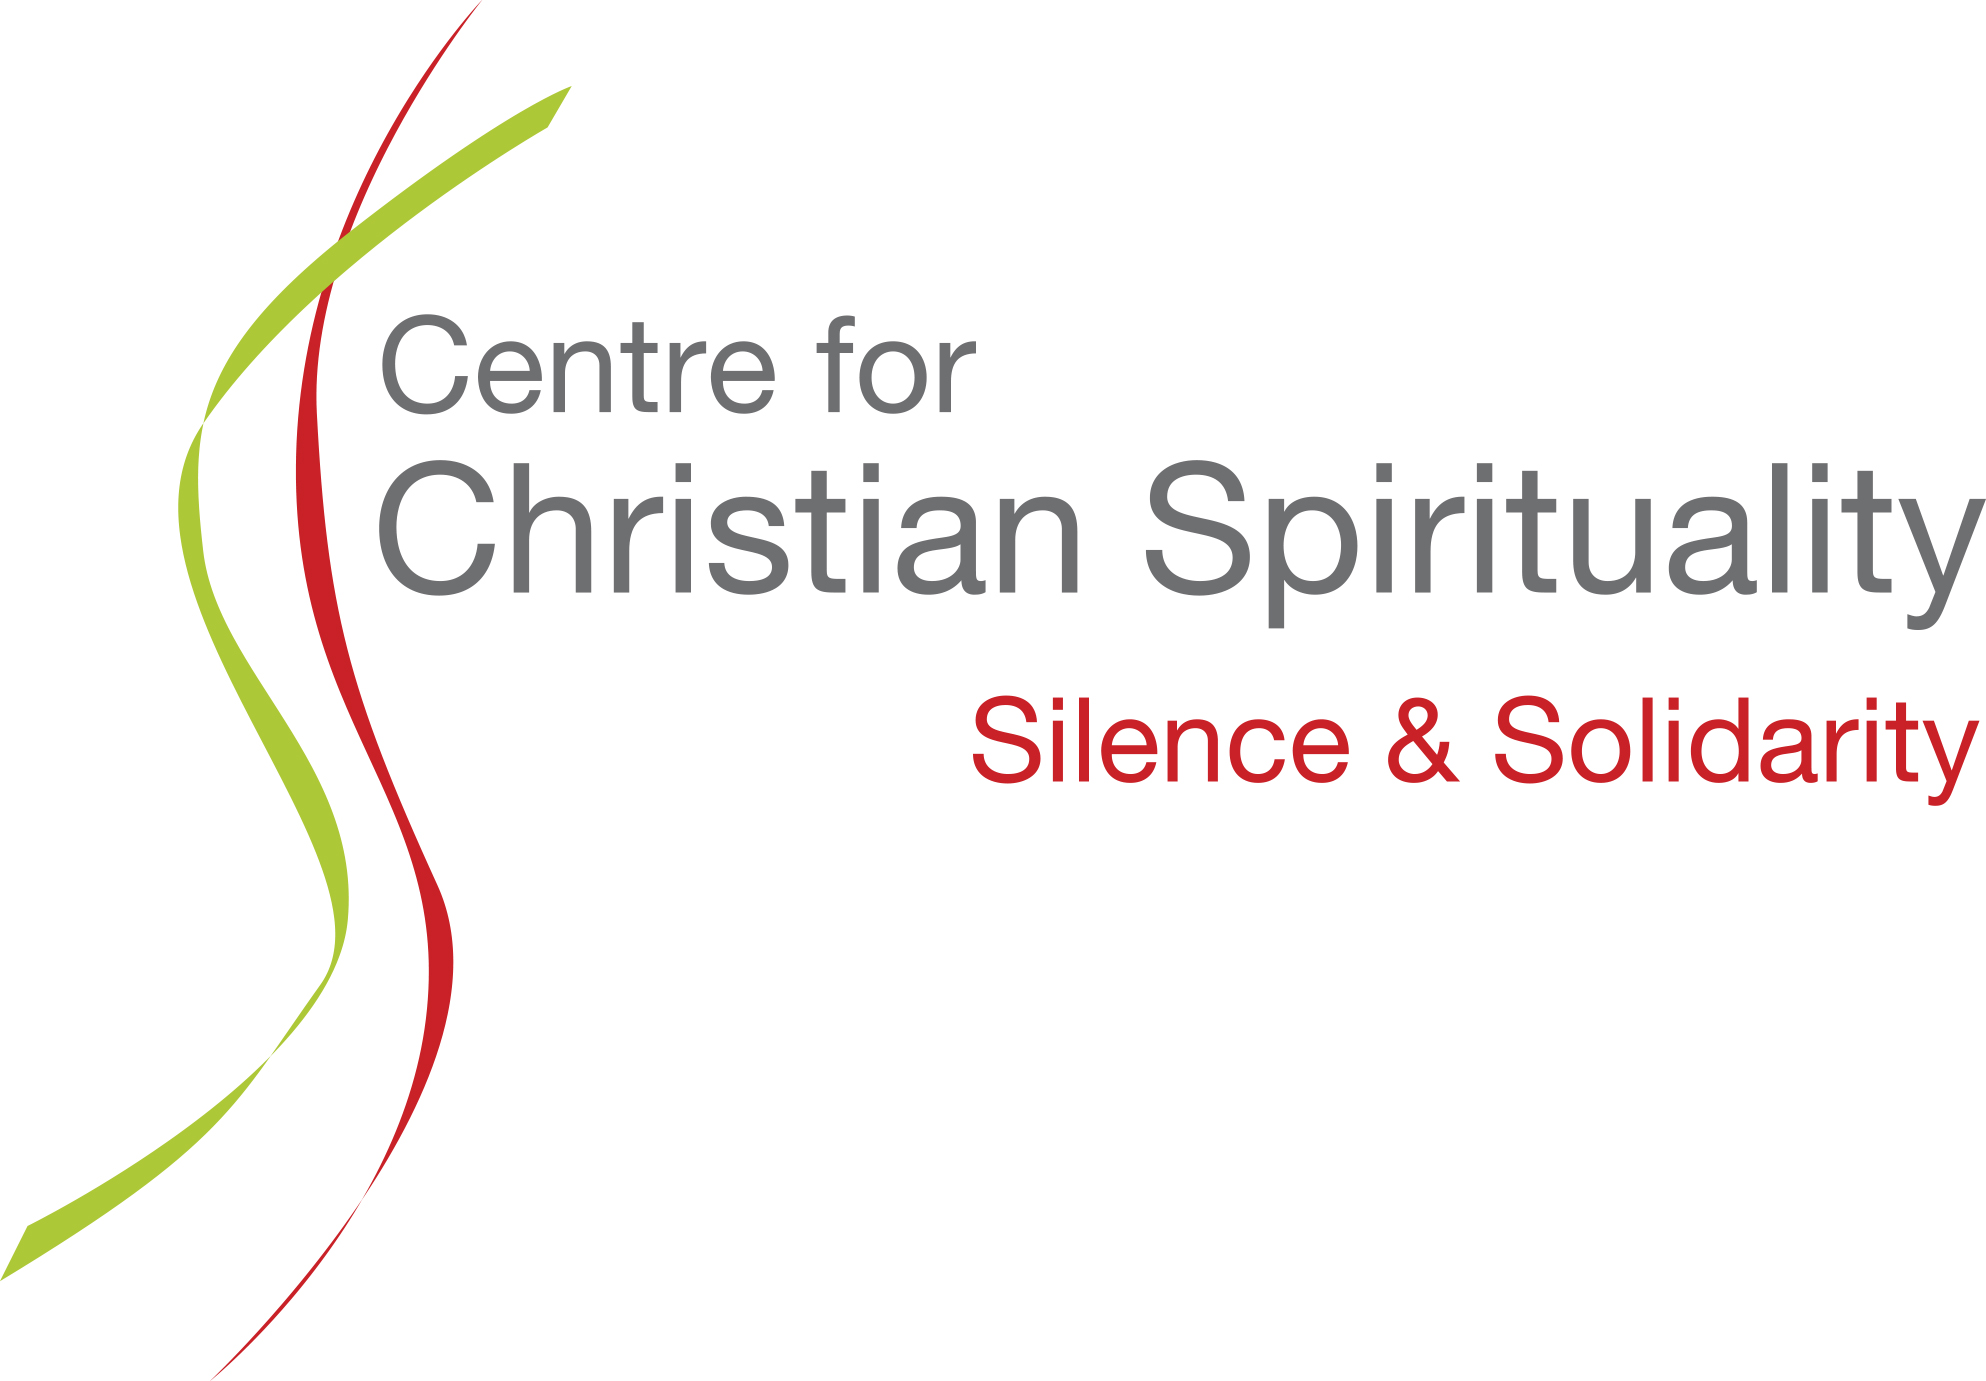 Centre for Christian Spirituality